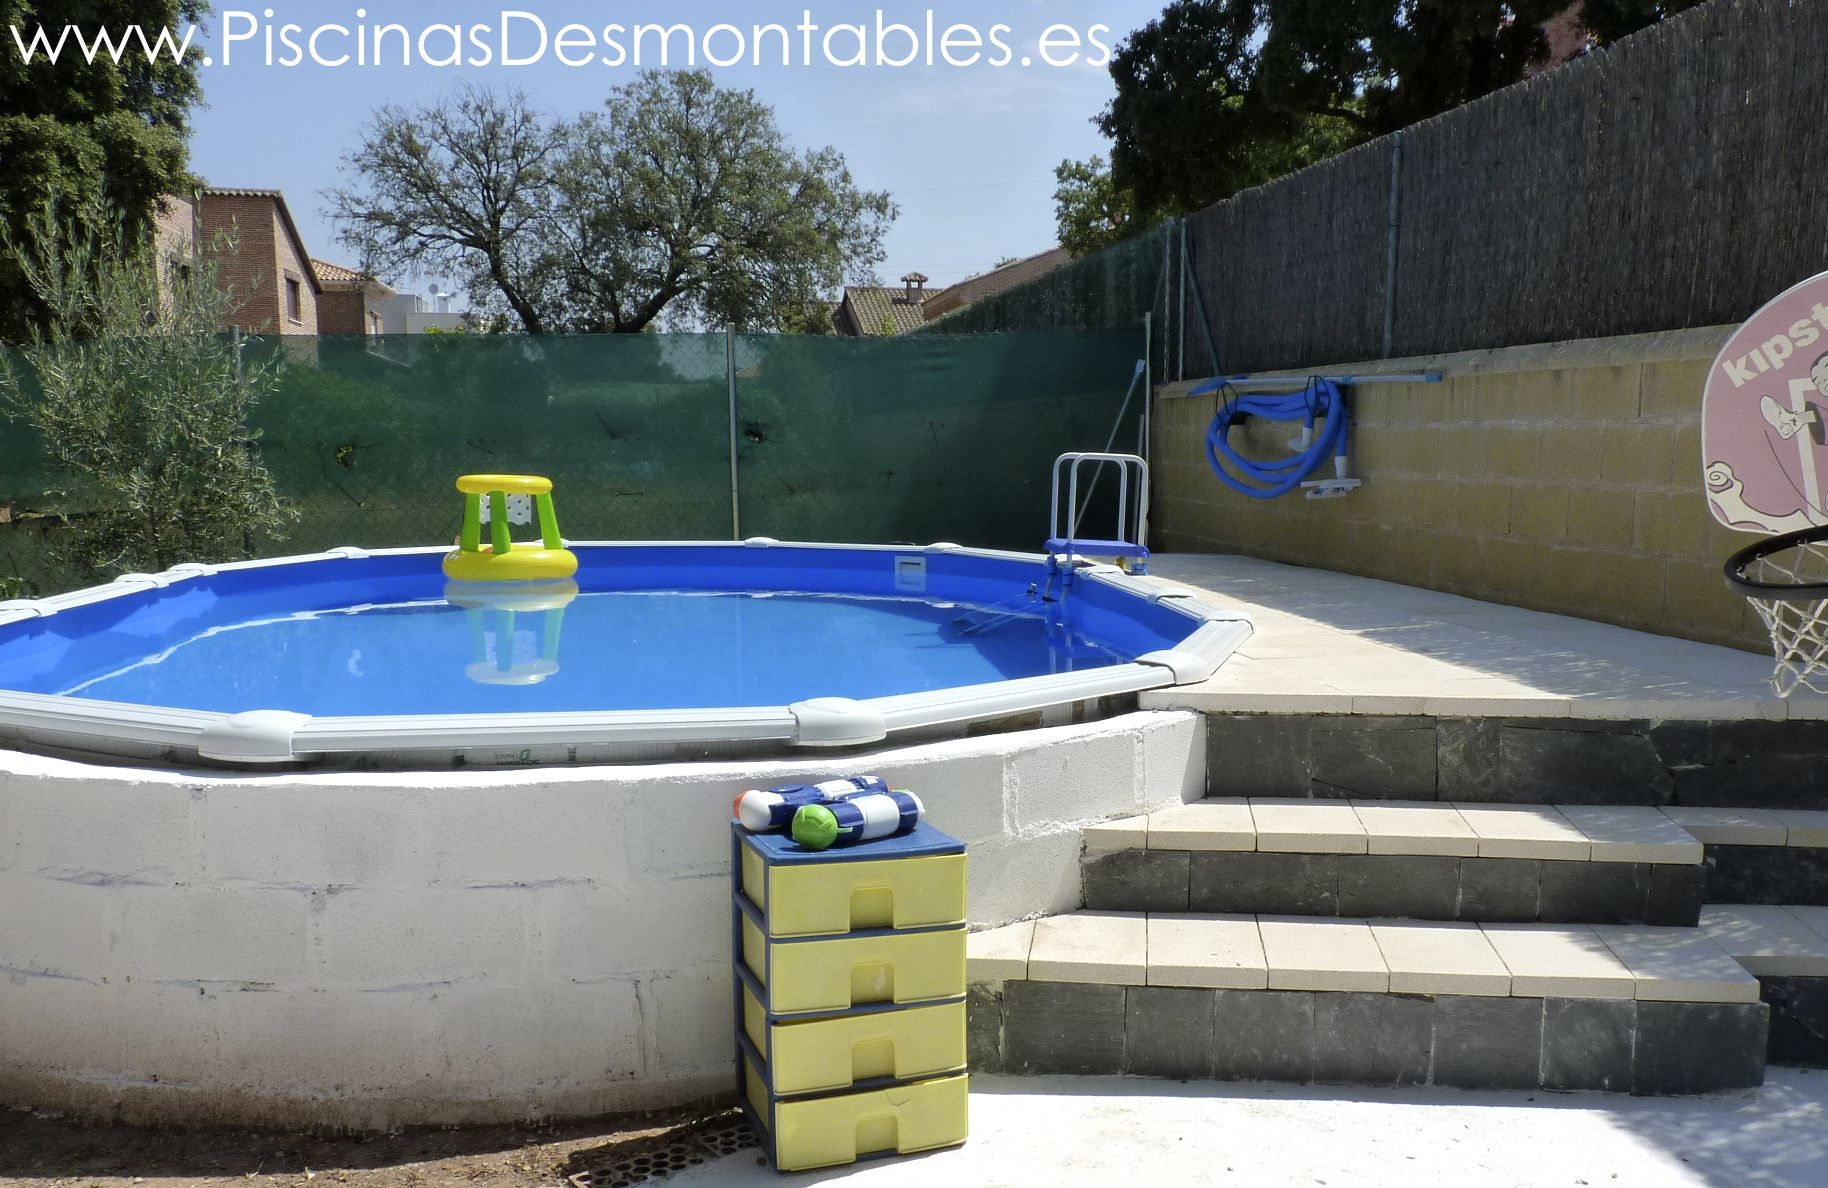 Piscina gre de 610x375x132cm serie atlantis semi enterrada for Piscinas desmontables para enterrar